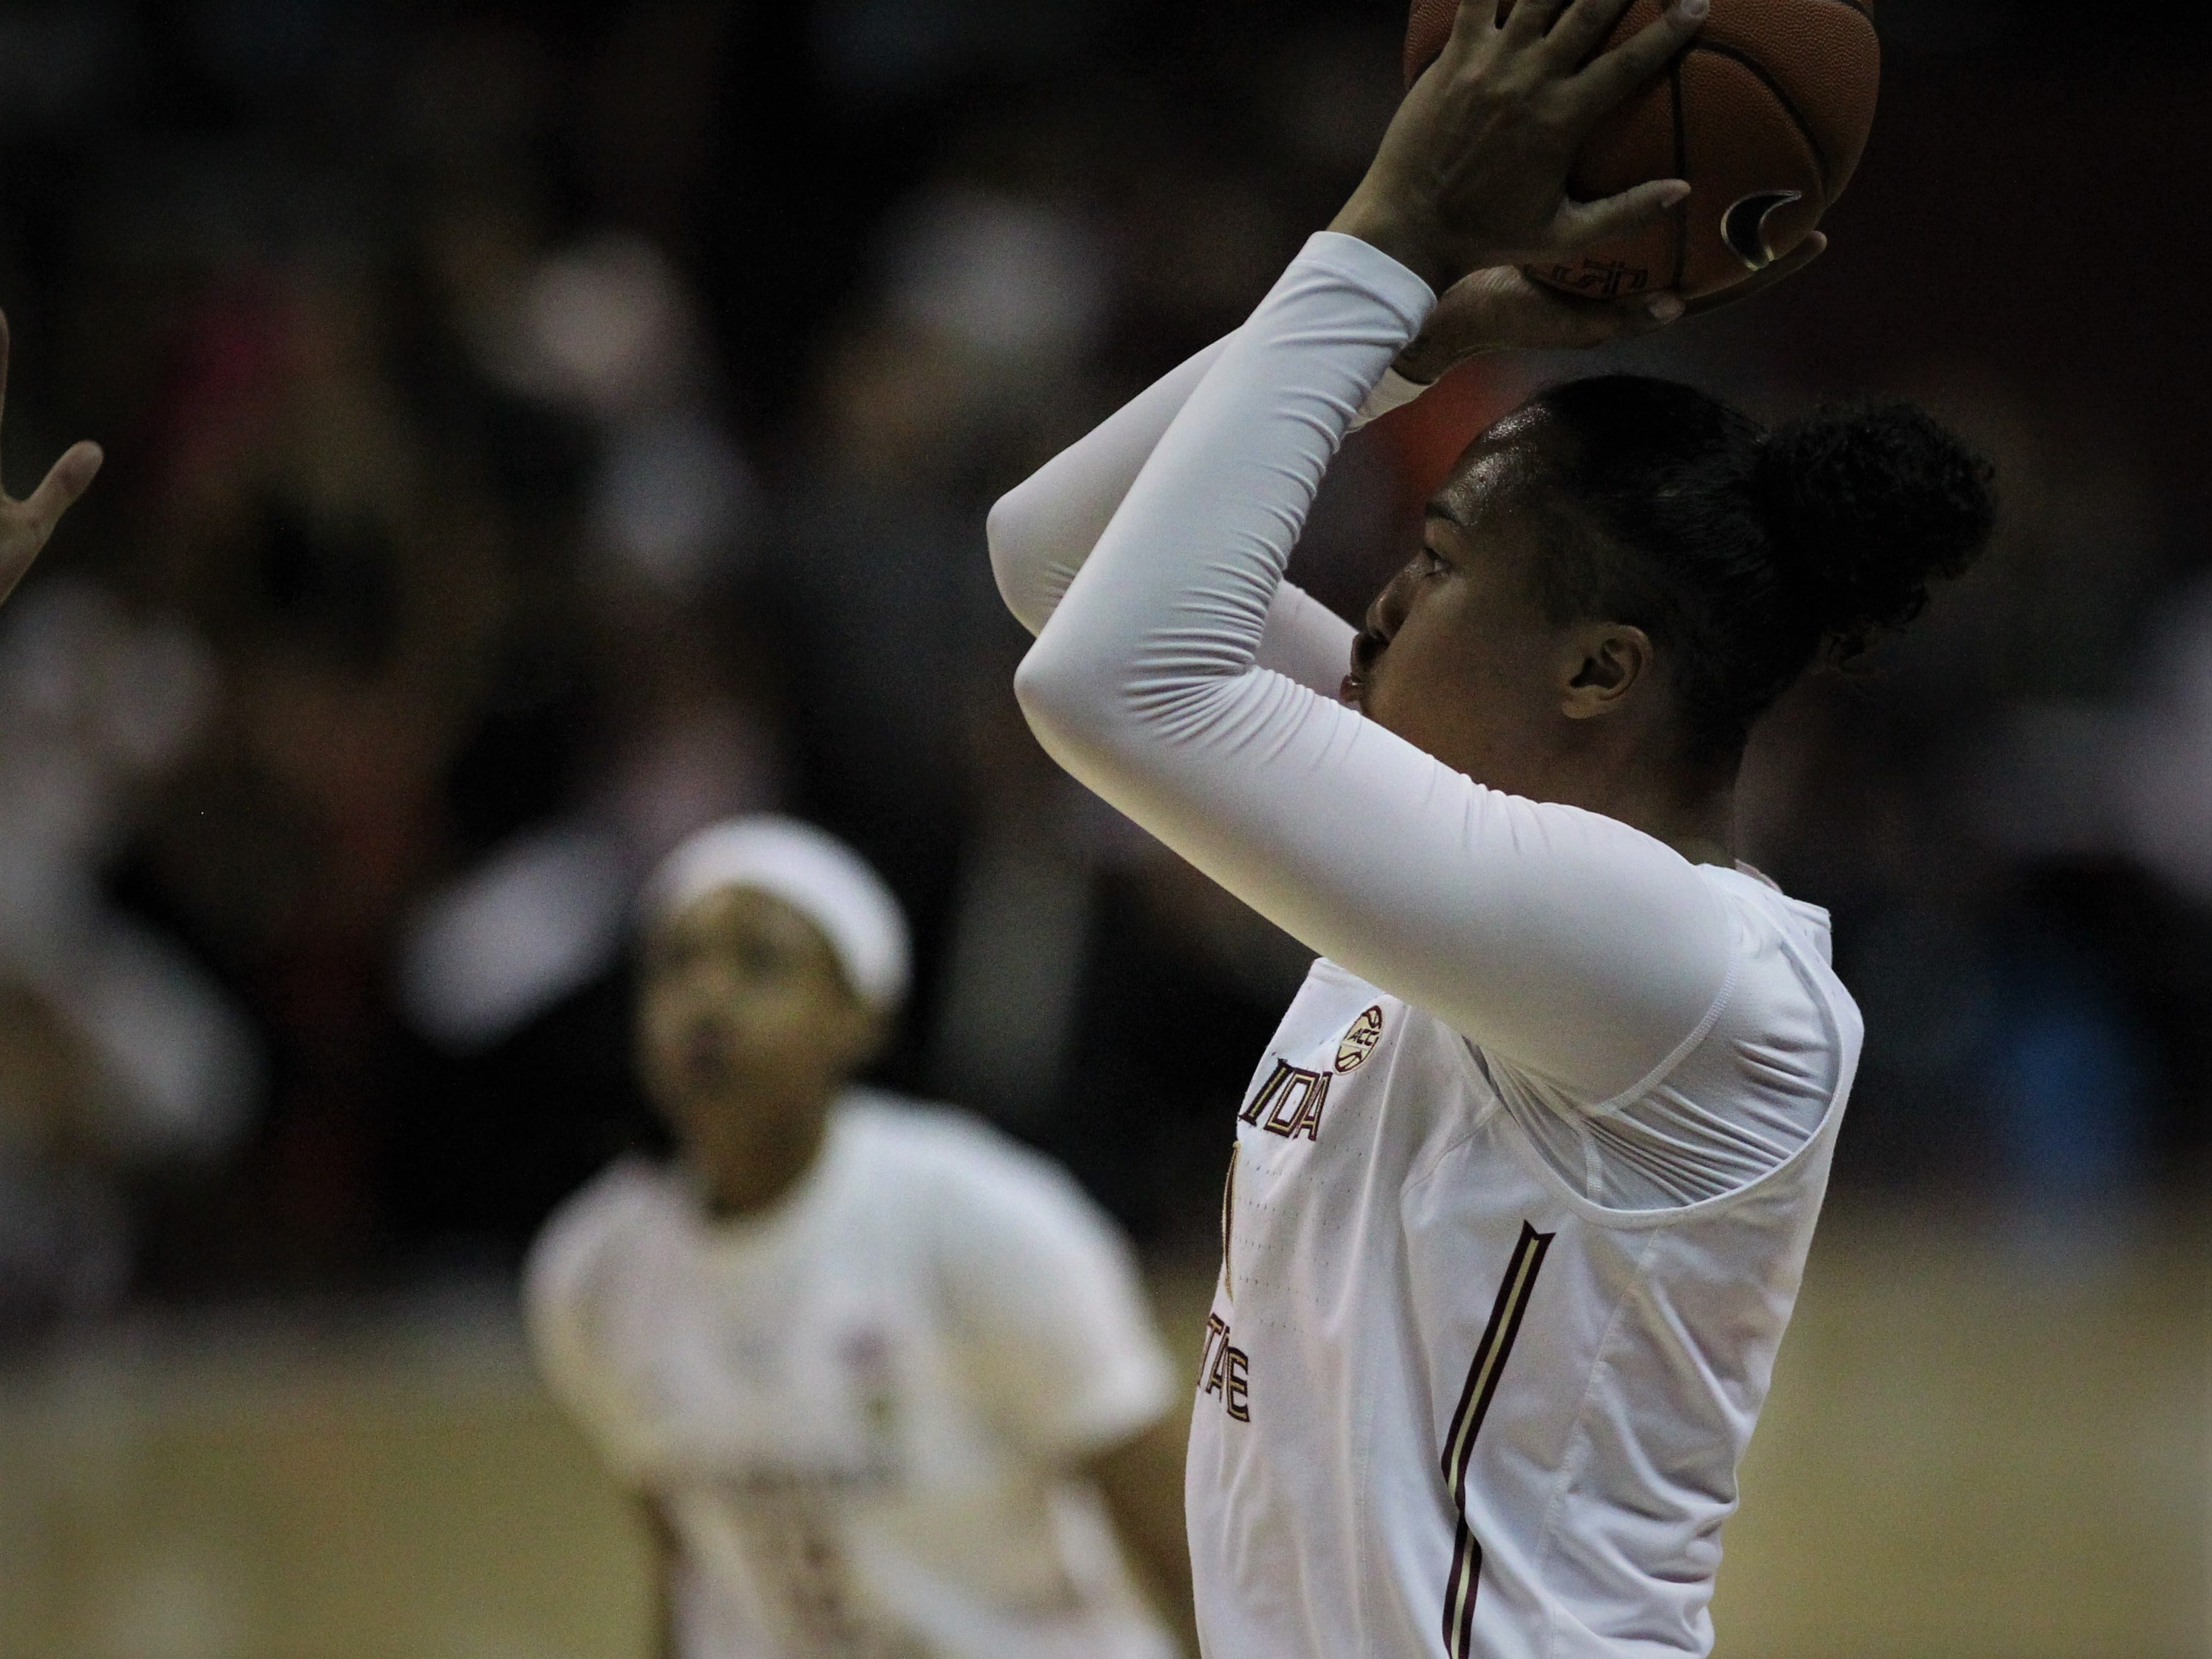 Florida State's Savannah Wilkinson shoots a jumper during the first half of the Seminoles' game against Florida at the Tucker Civic Center on Nov. 11, 2018.